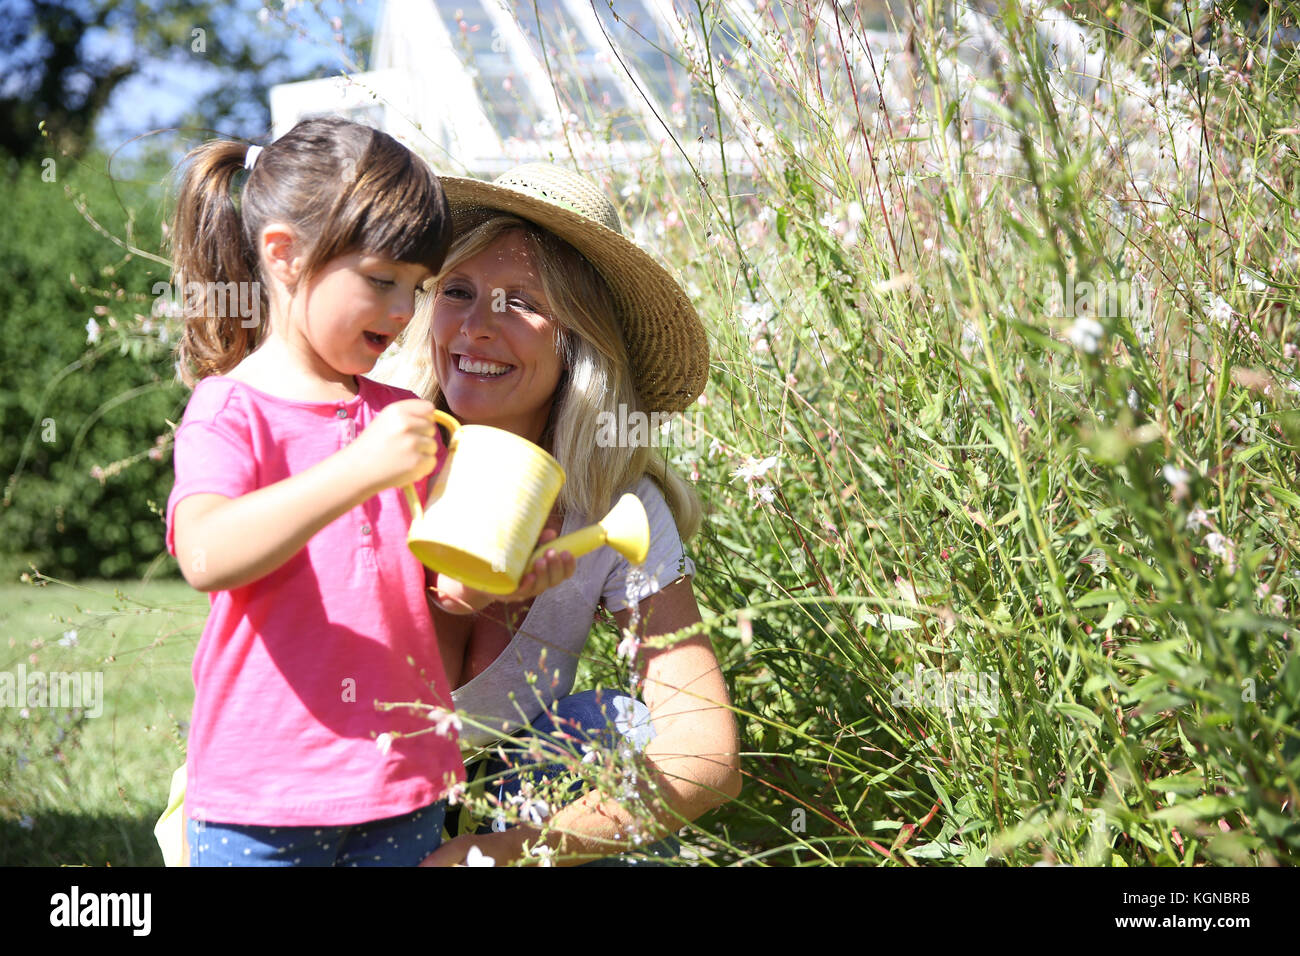 Woman with little girl watering plants in garden - Stock Image